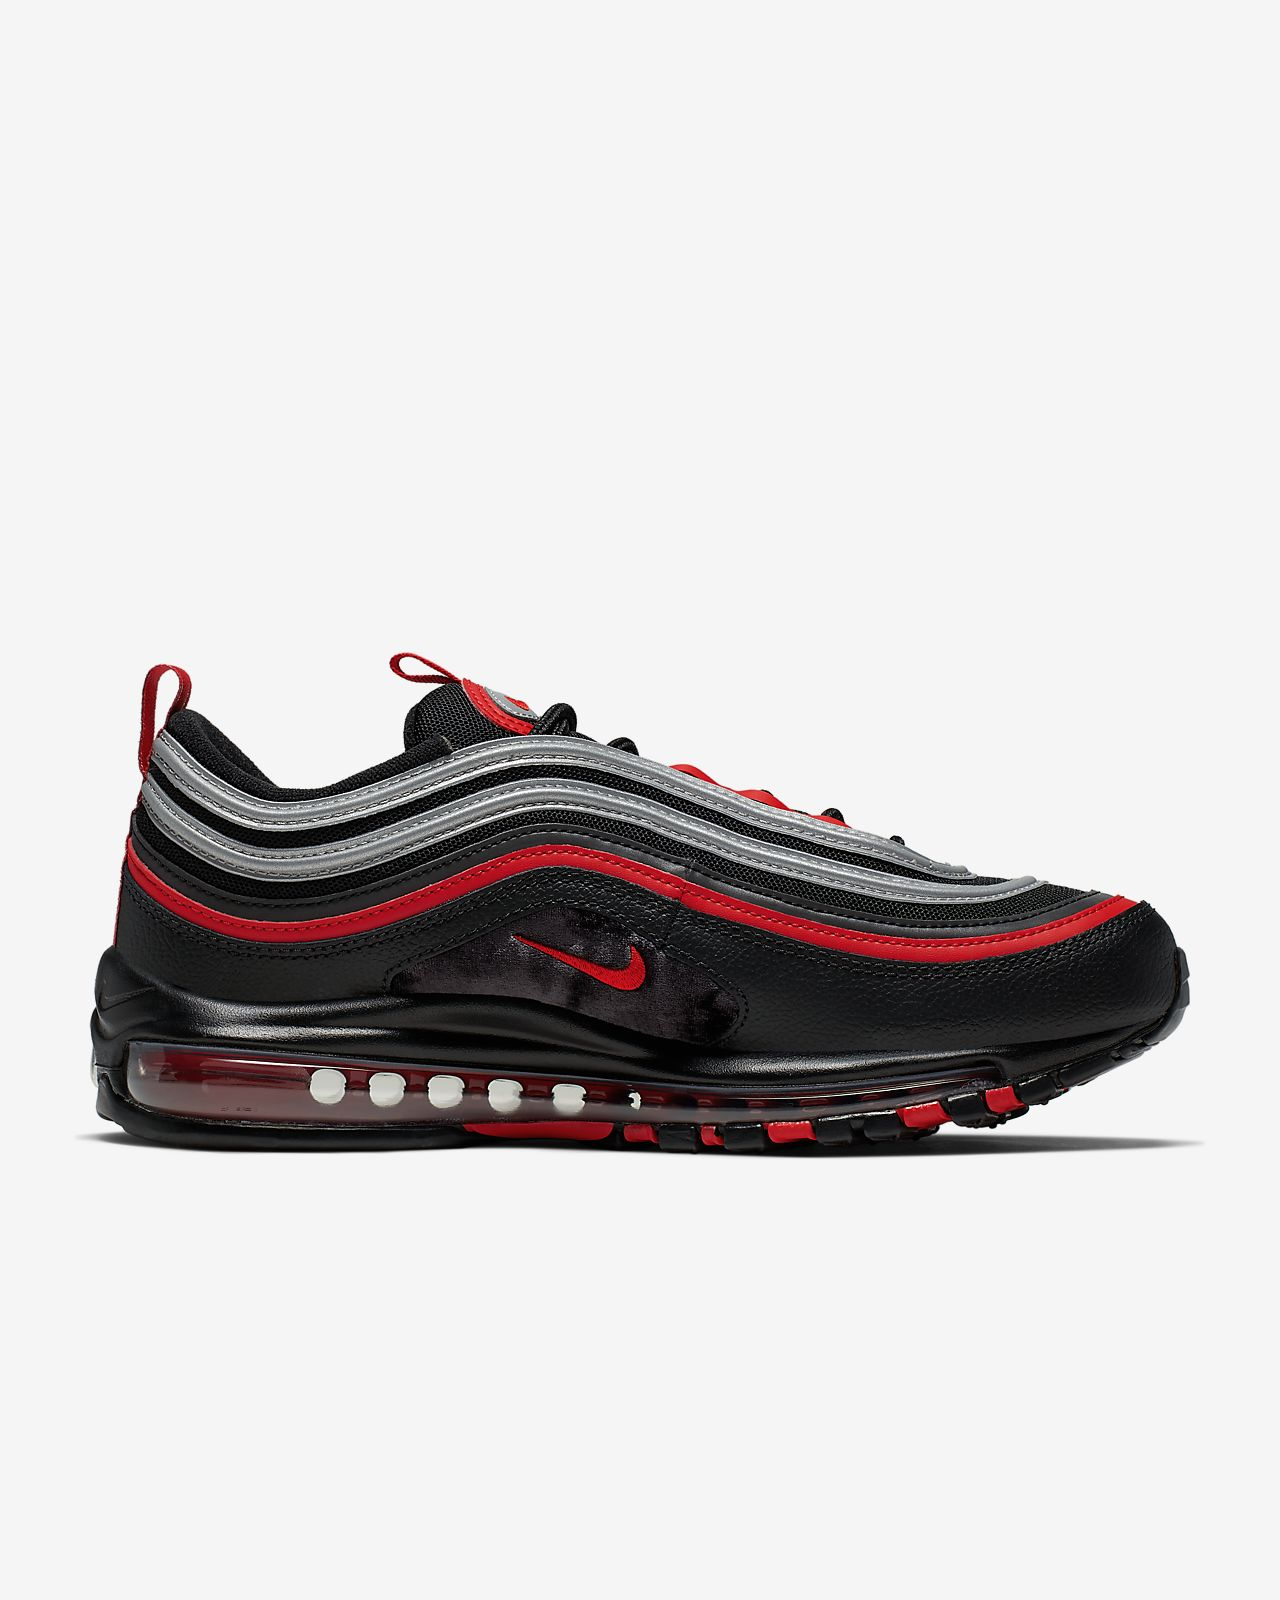 Nike Air Max 97 Black Patent First Look 921826 010